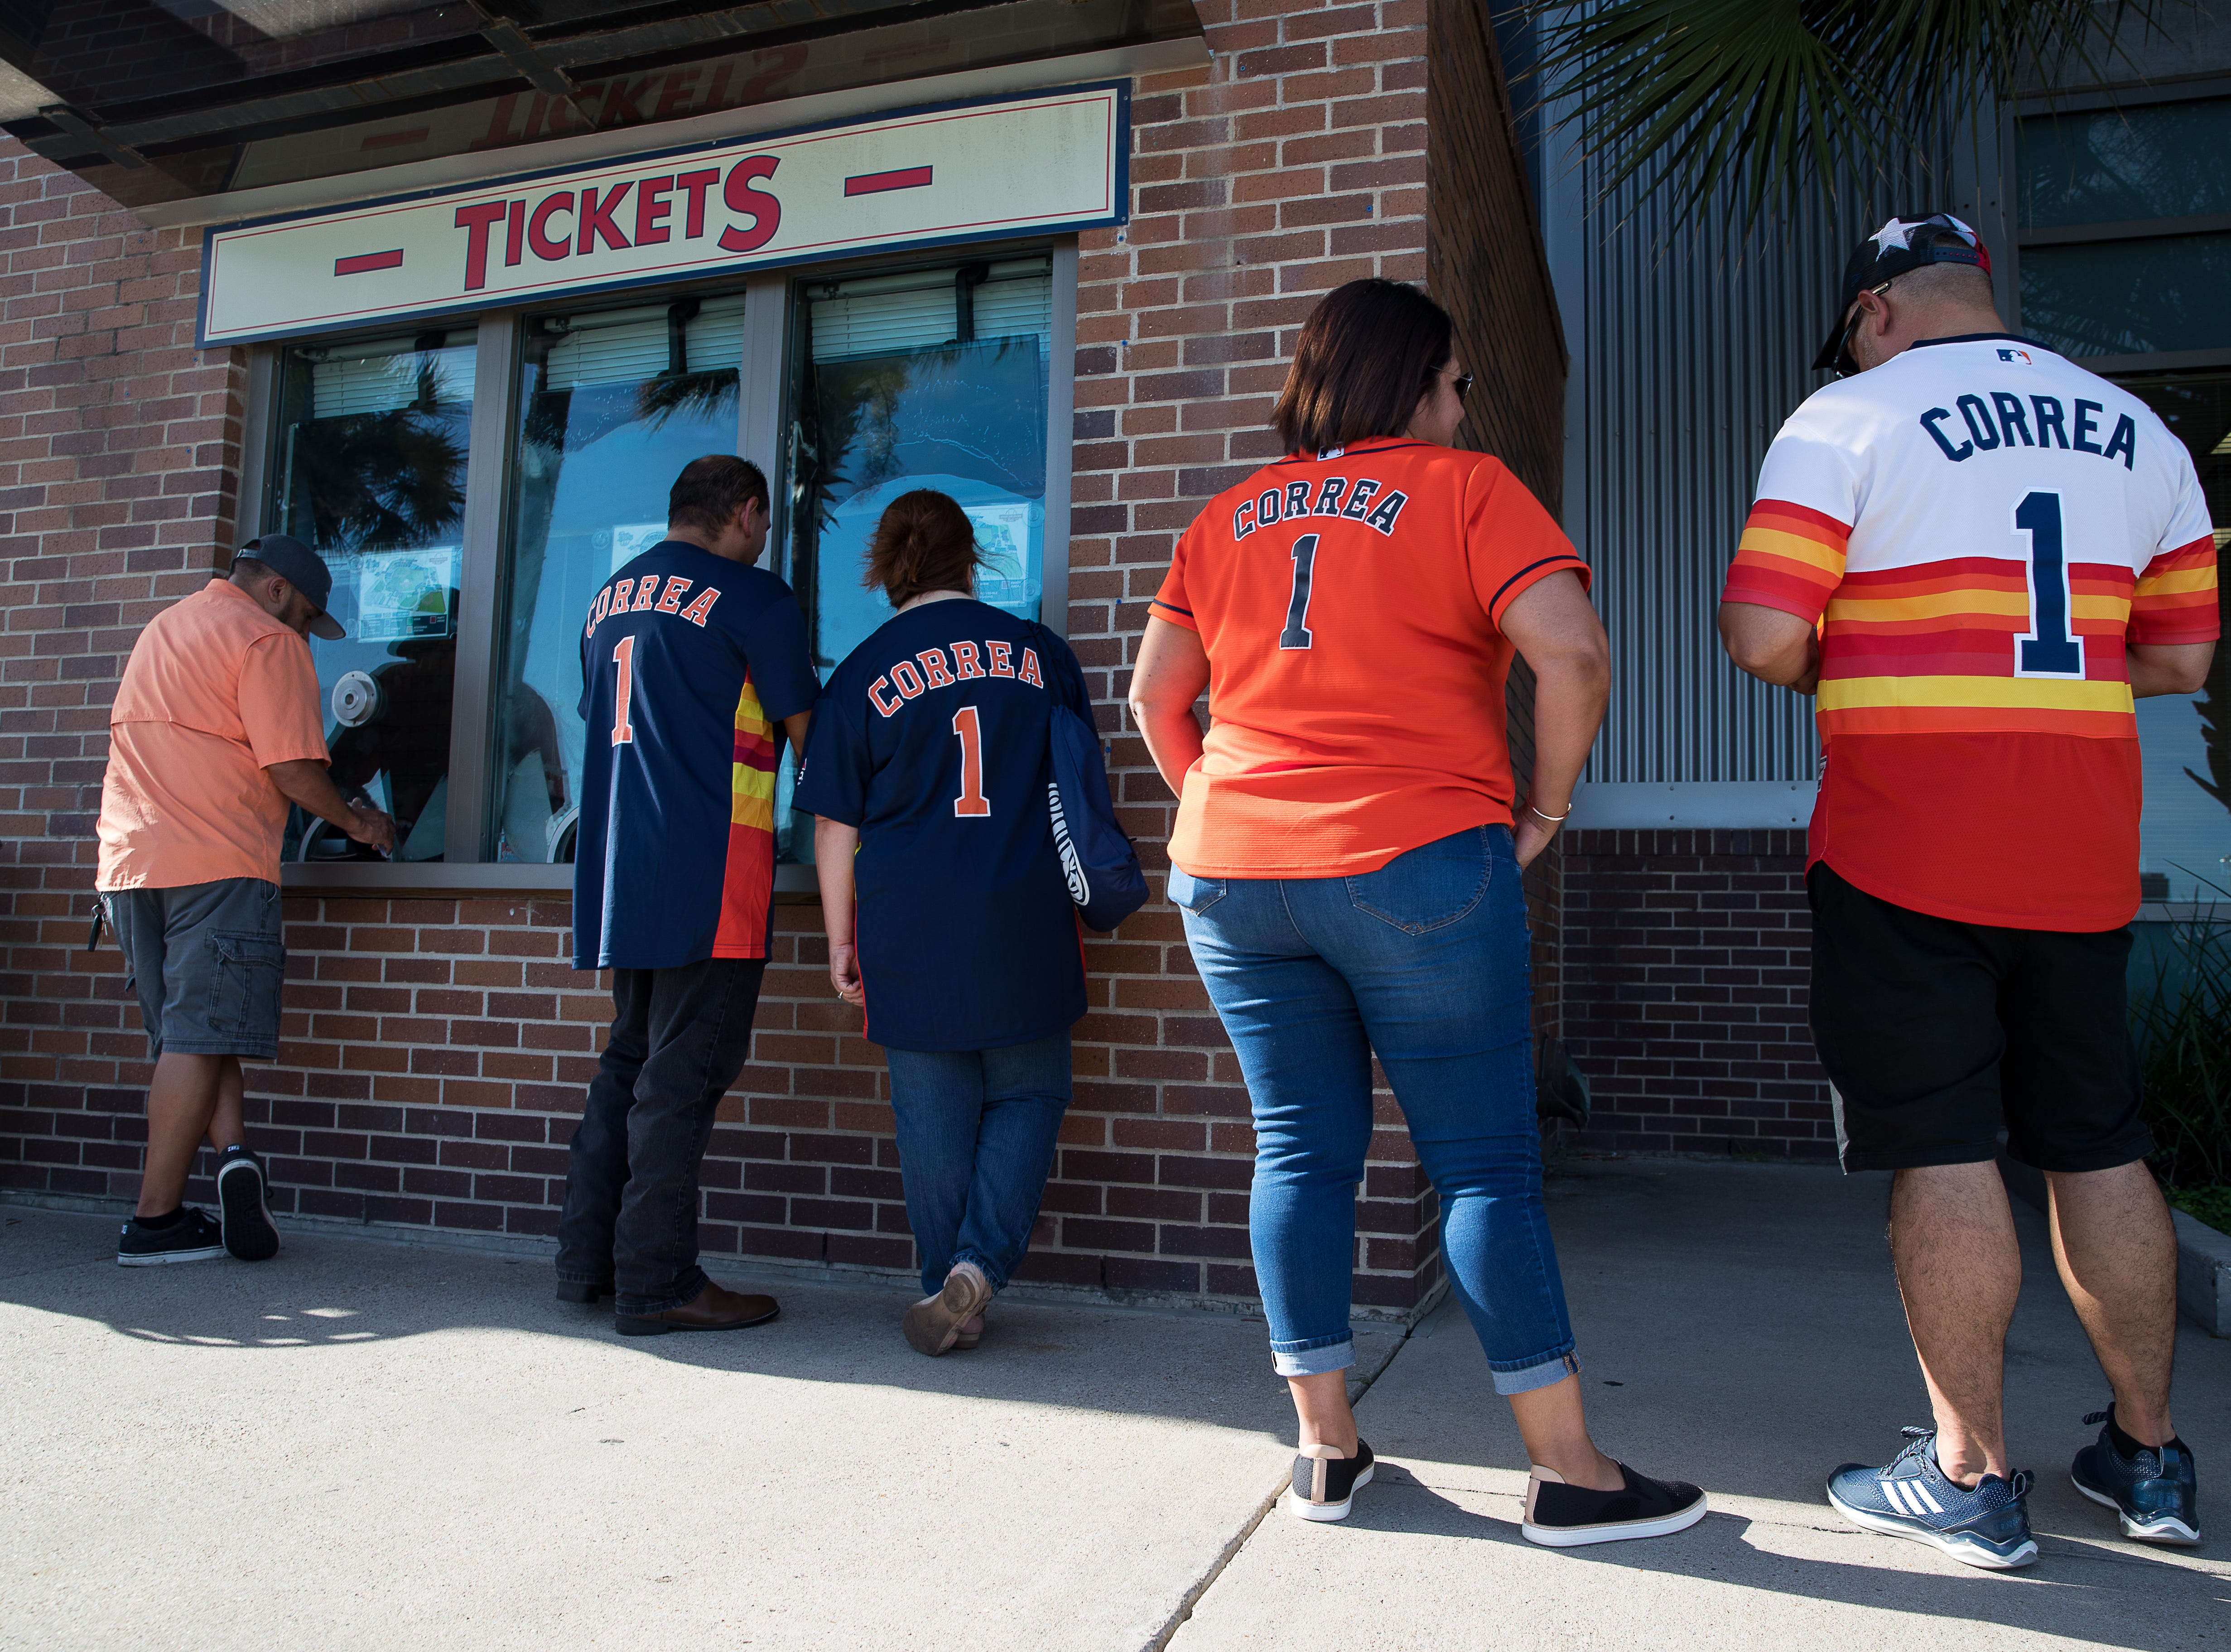 Fans in Carlos Correa Astros jerseys buy tickets outside Whataburger Field before a Hooks game where Correa is playing on a rehab assignment Tuesday, Aug. 7, 2018.